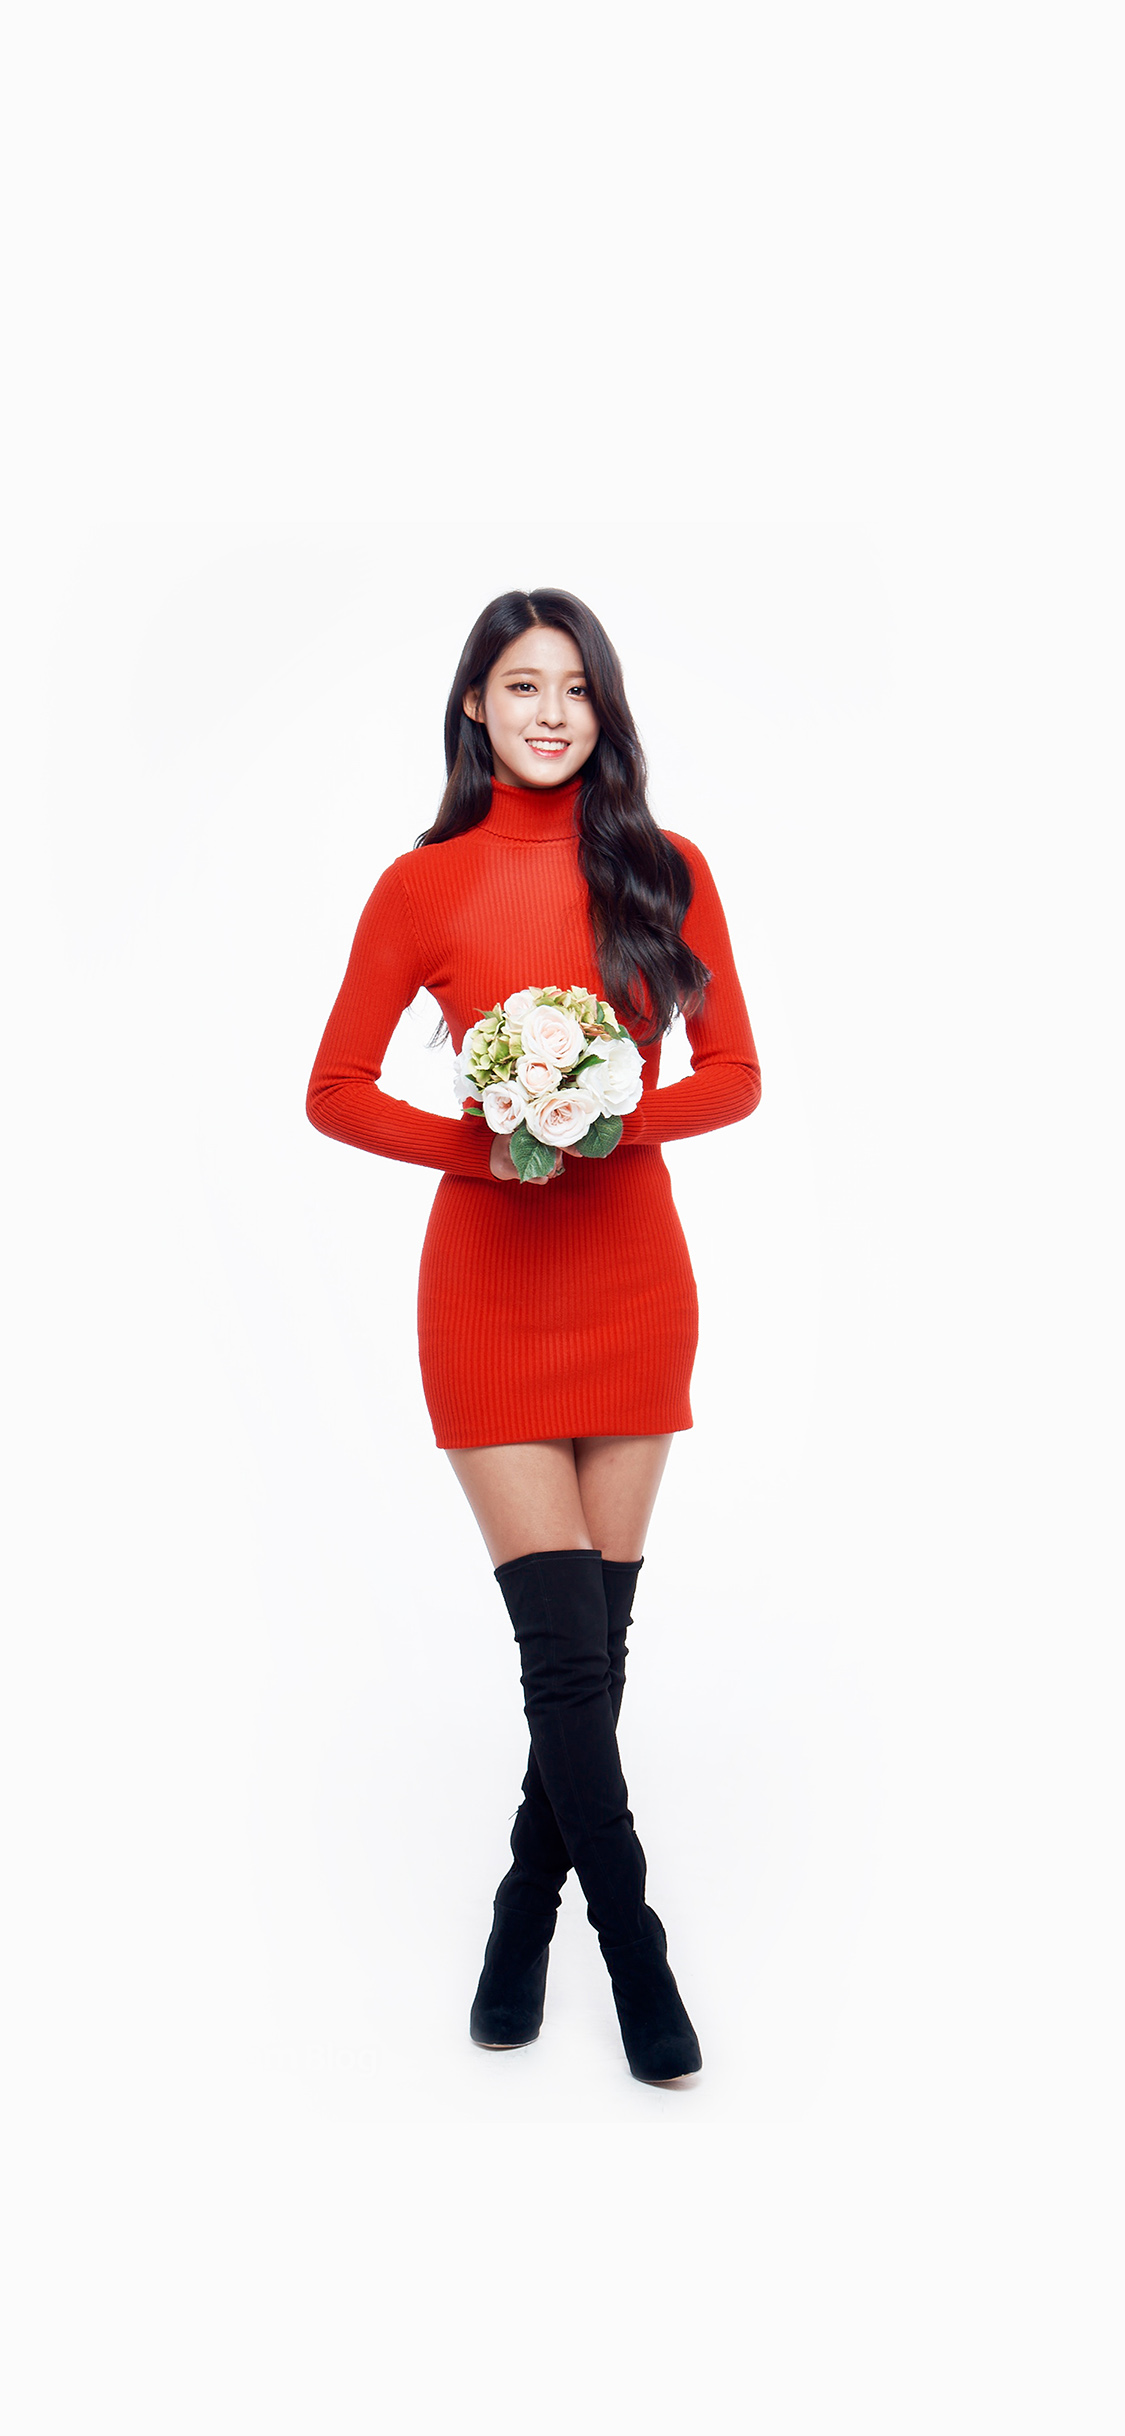 iPhoneXpapers.com | iPhone X wallpaper | hh01-seolhyun-aoa-red ...